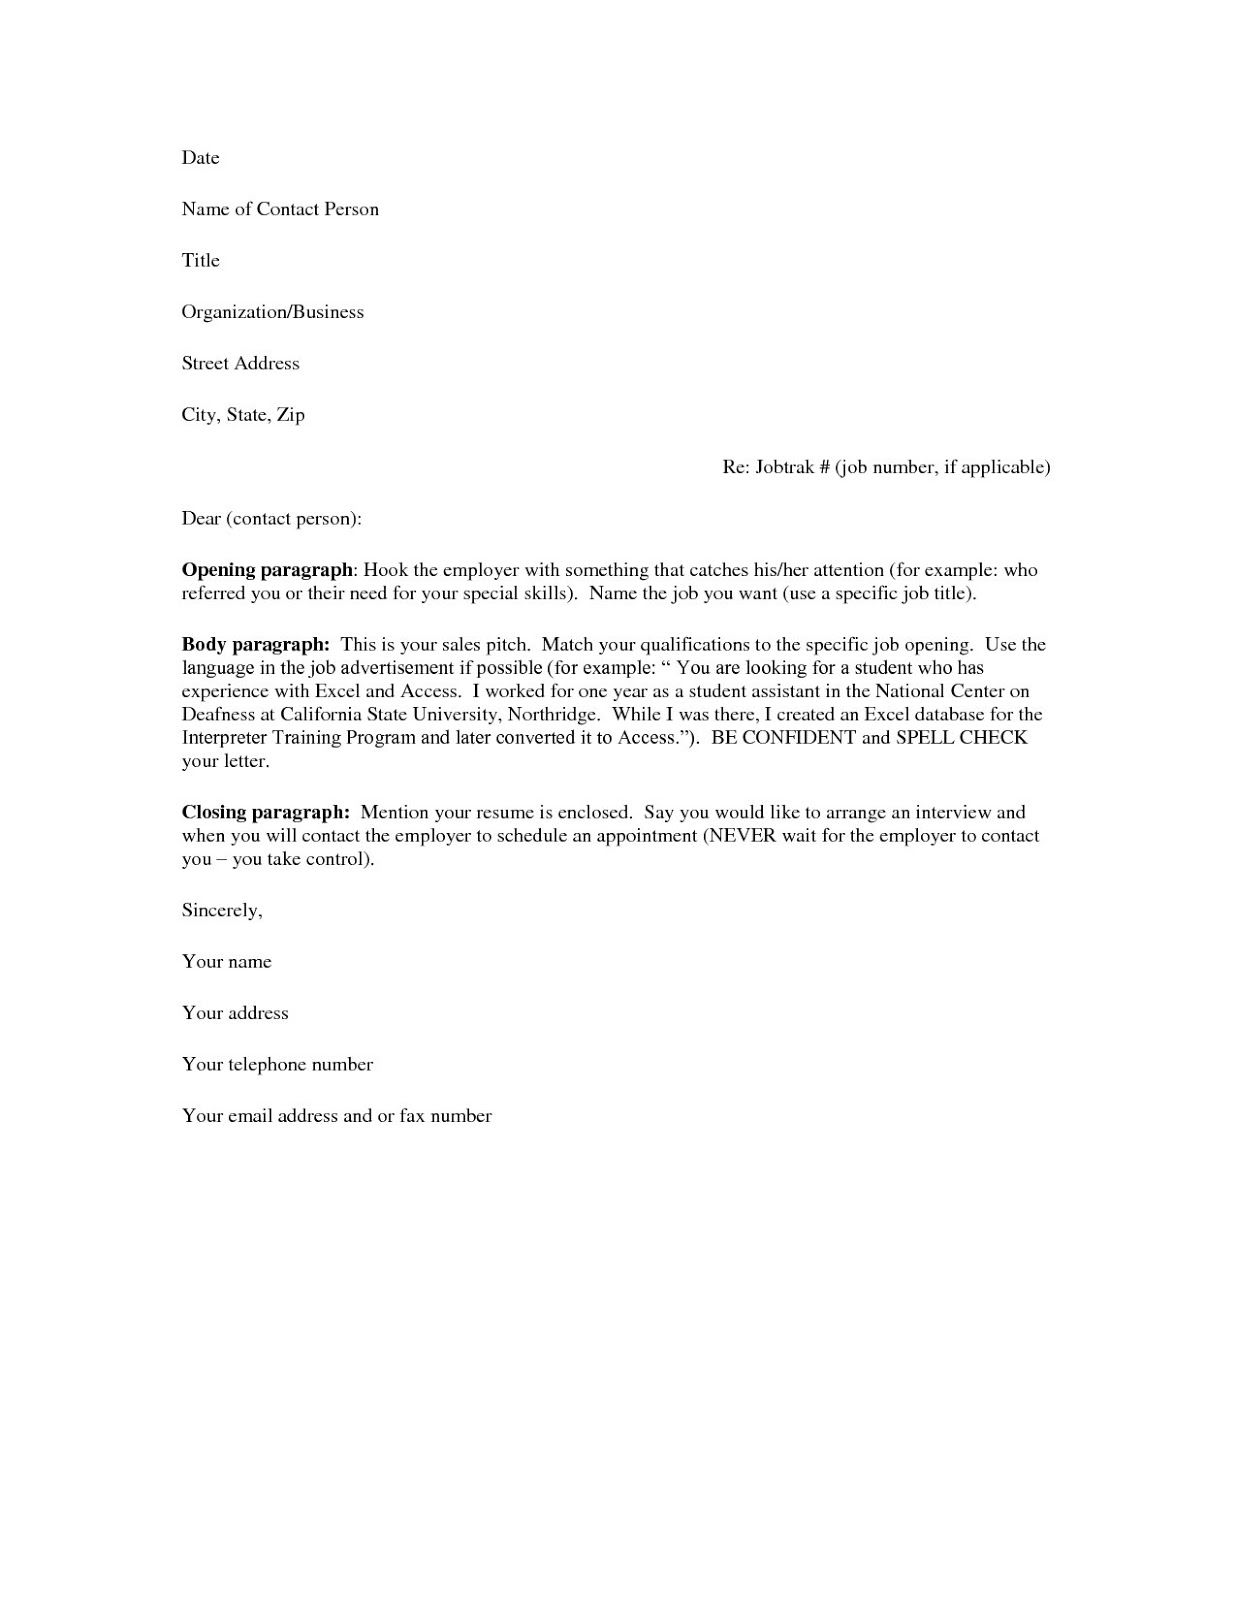 related post for sample resume cover letter